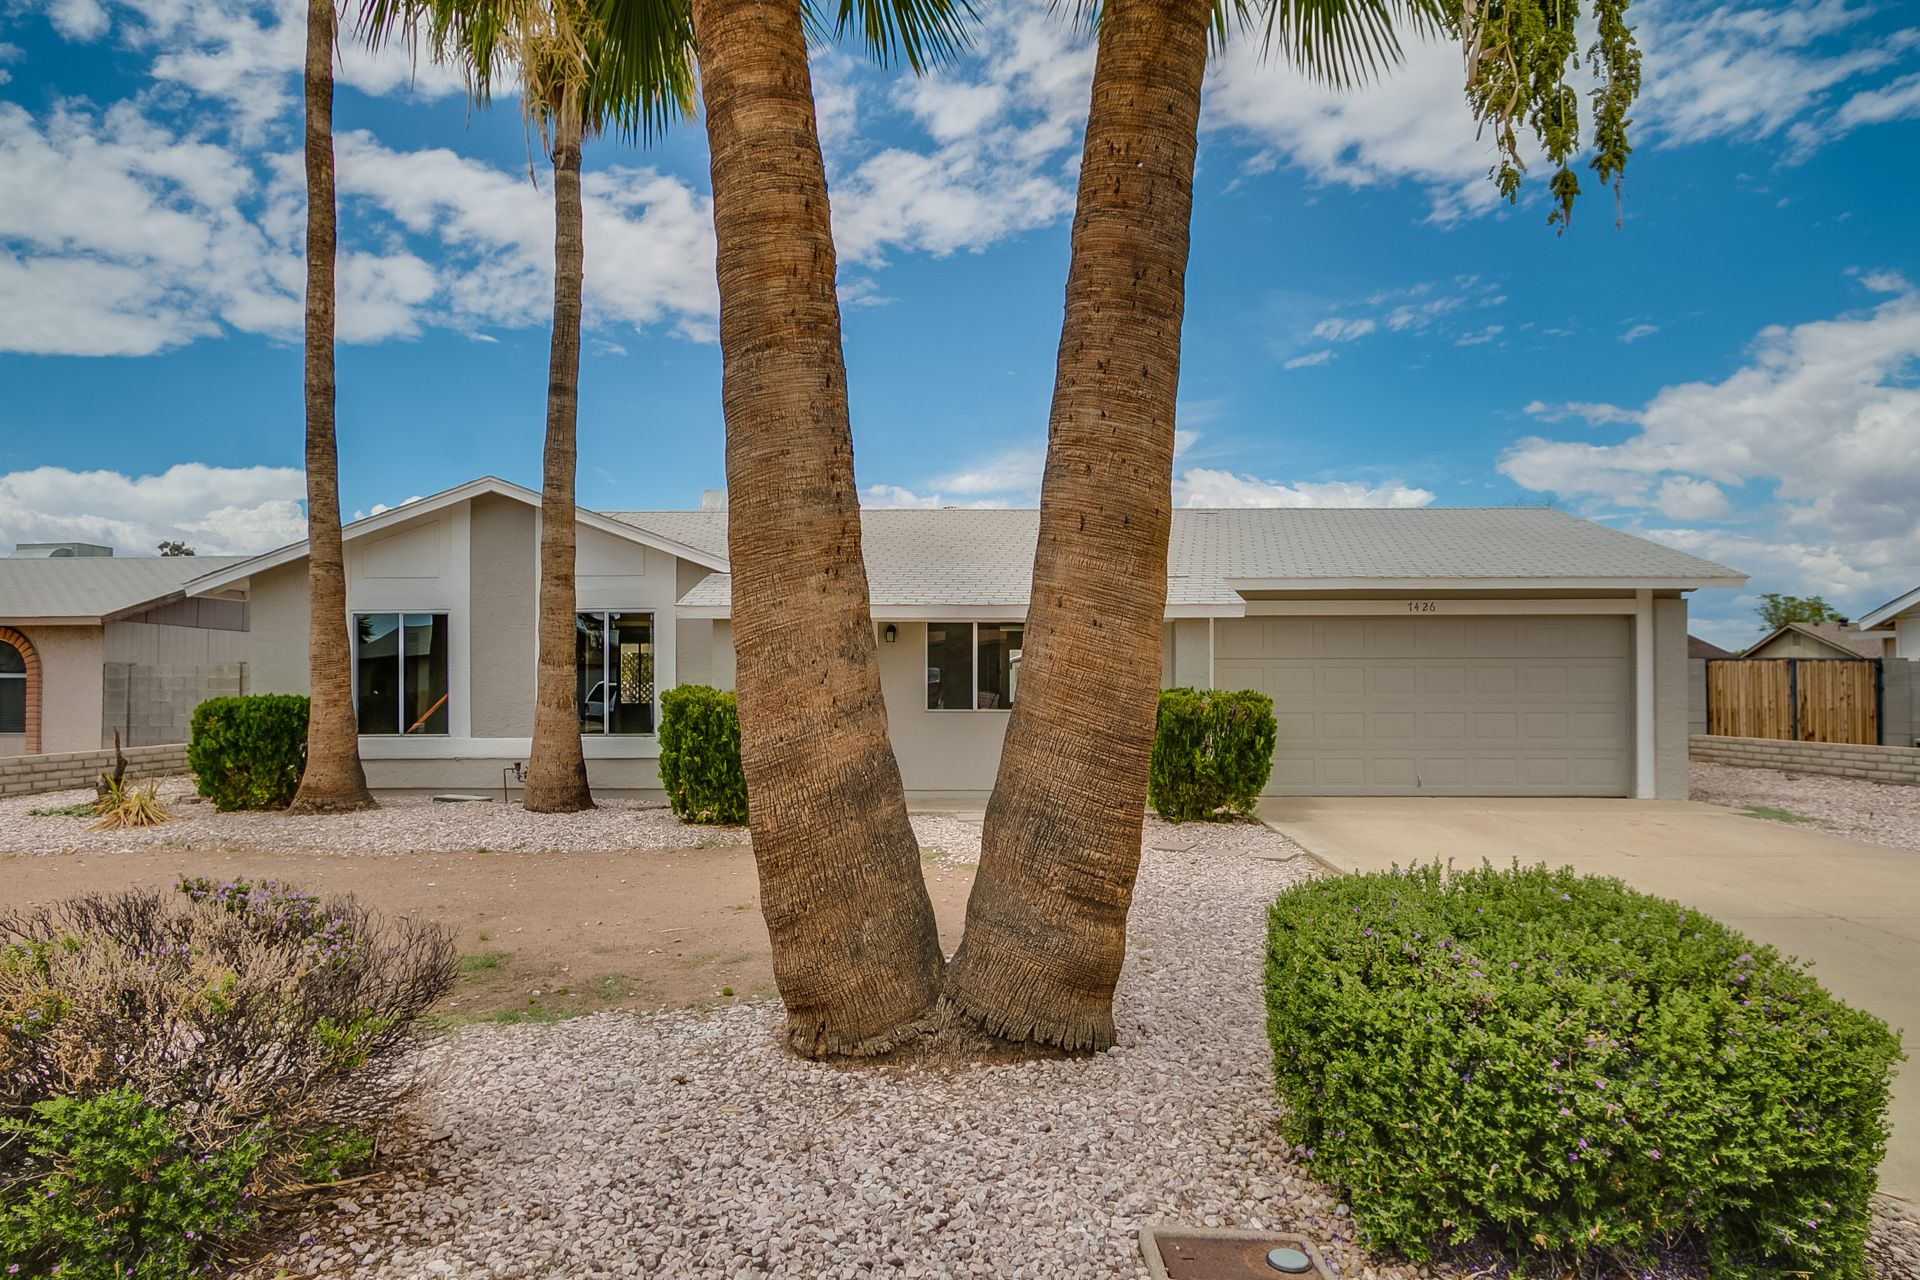 Here is the Brand New Picture Of Patio Homes for Sale Peoria Az